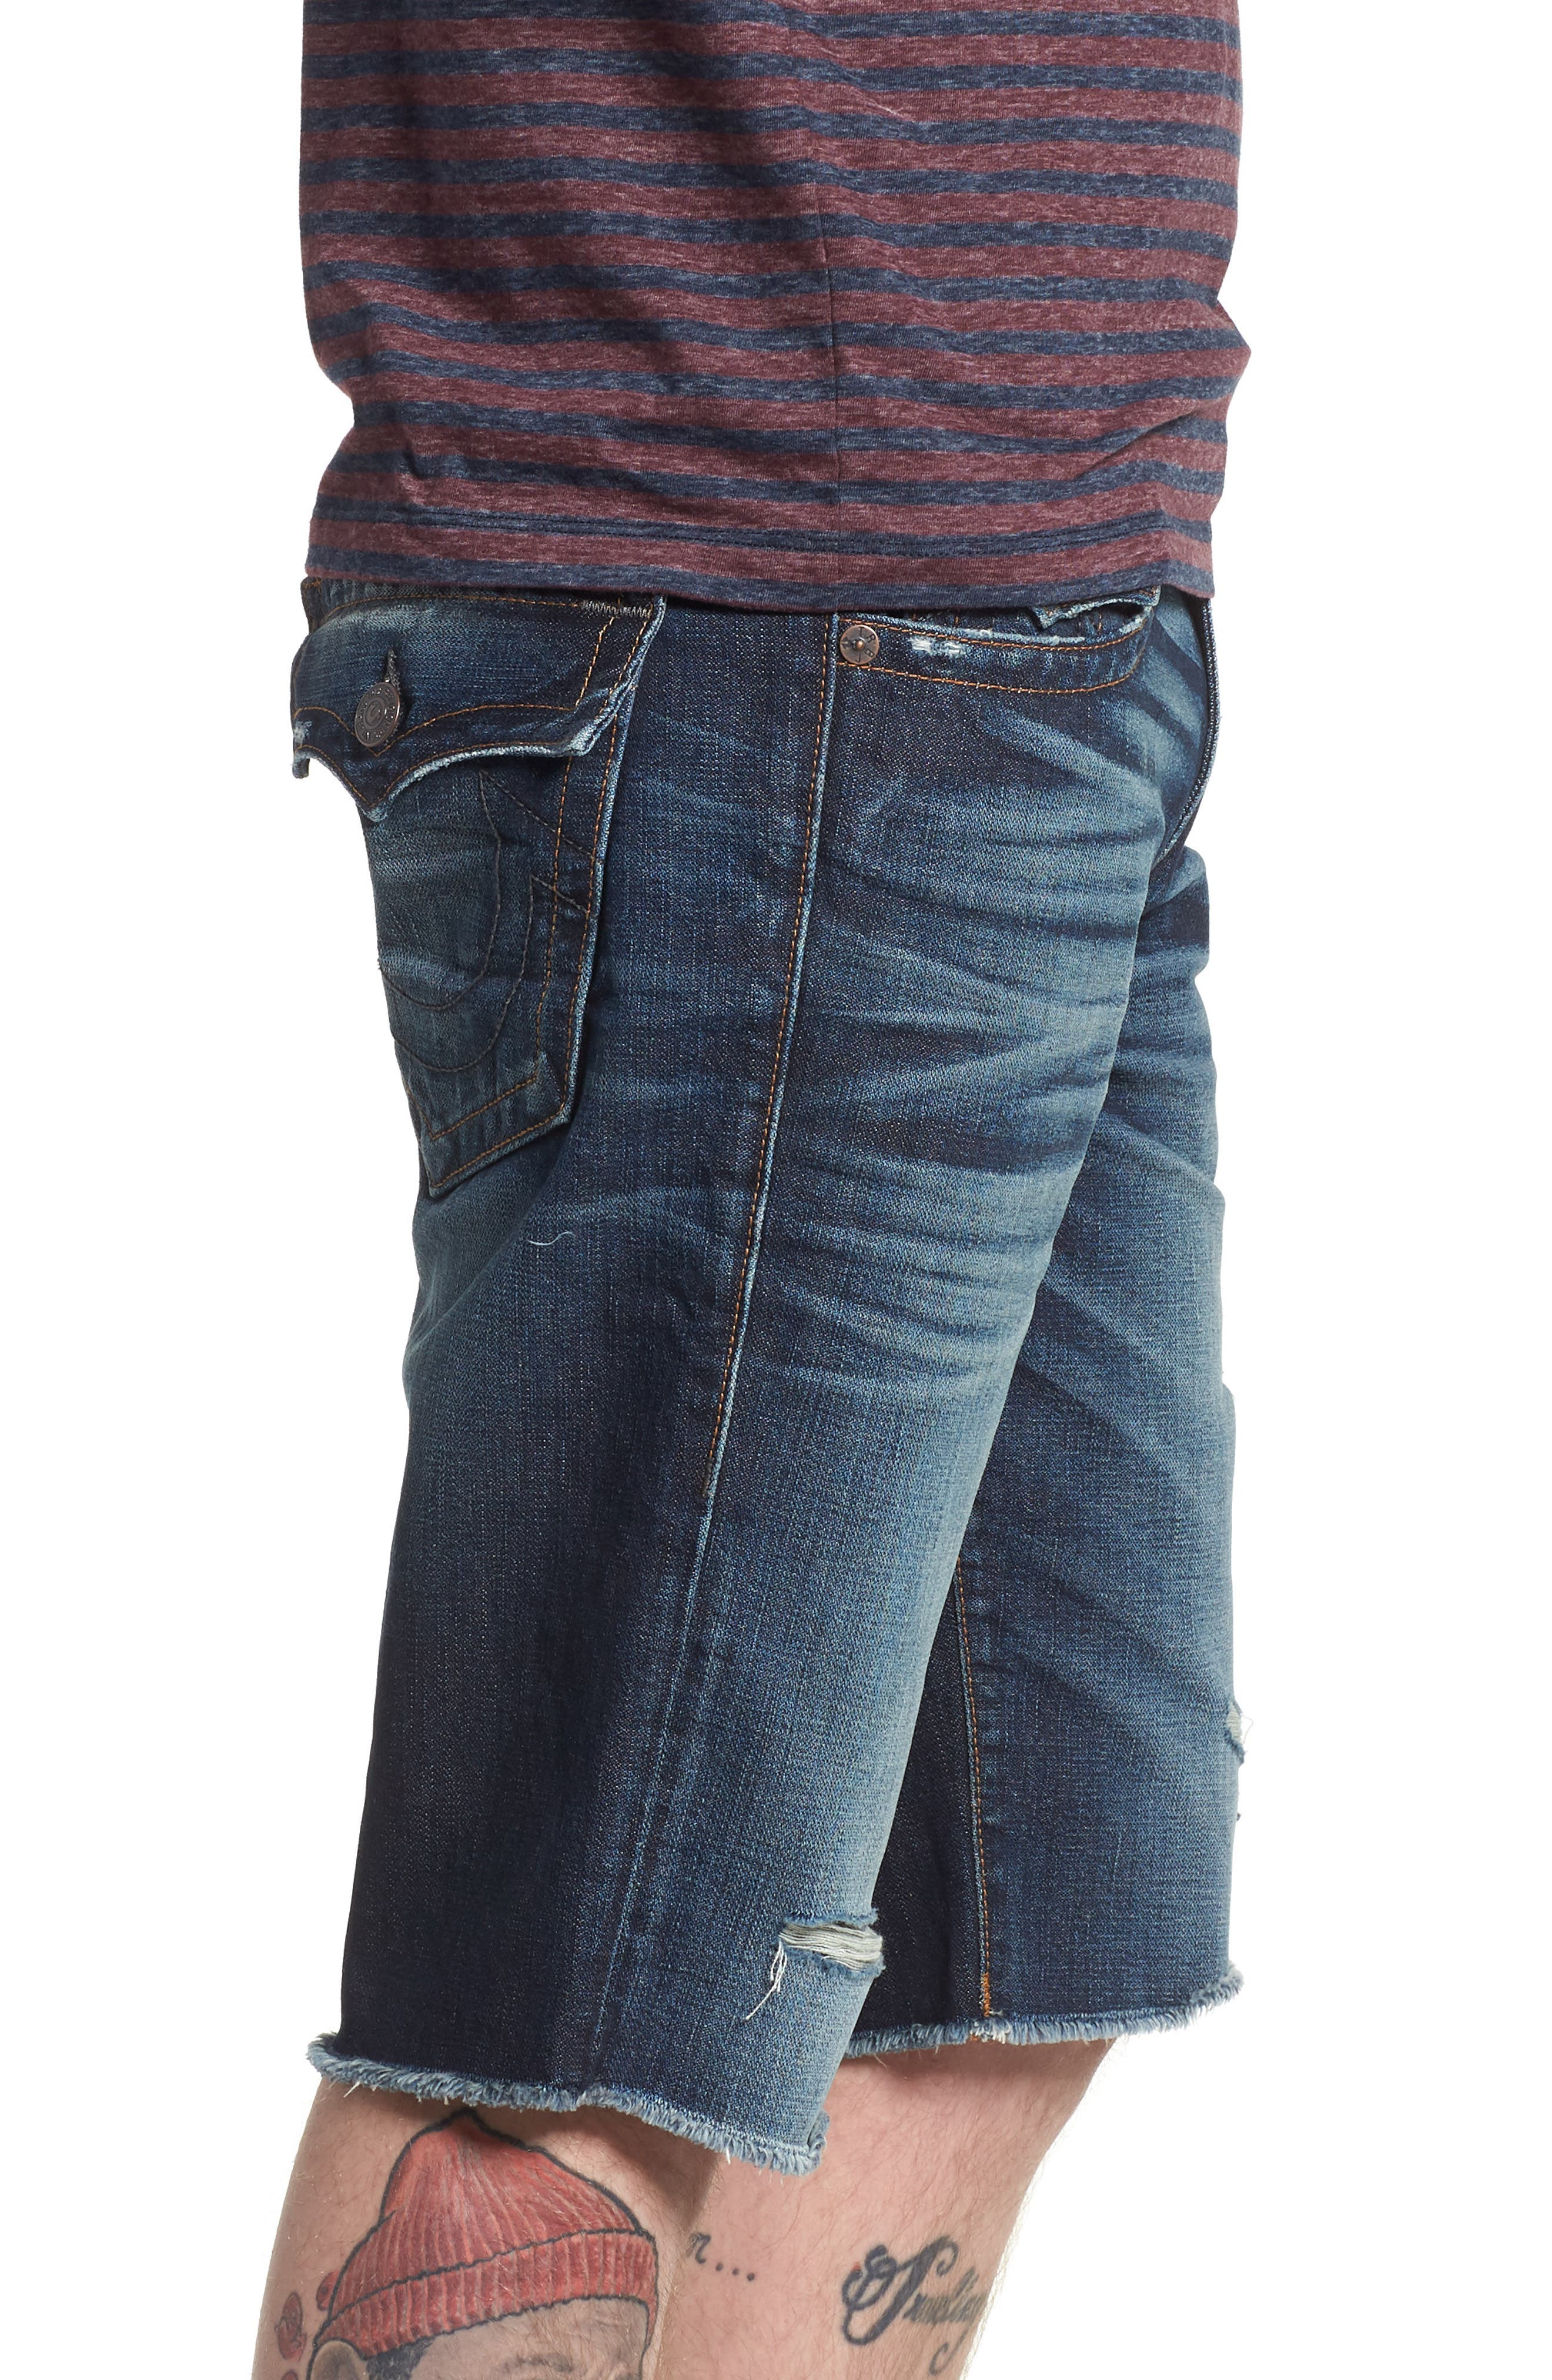 Ricky Relaxed Fit Denim Shorts,                             Alternate thumbnail 3, color,                             Eqrd Mignight Menace